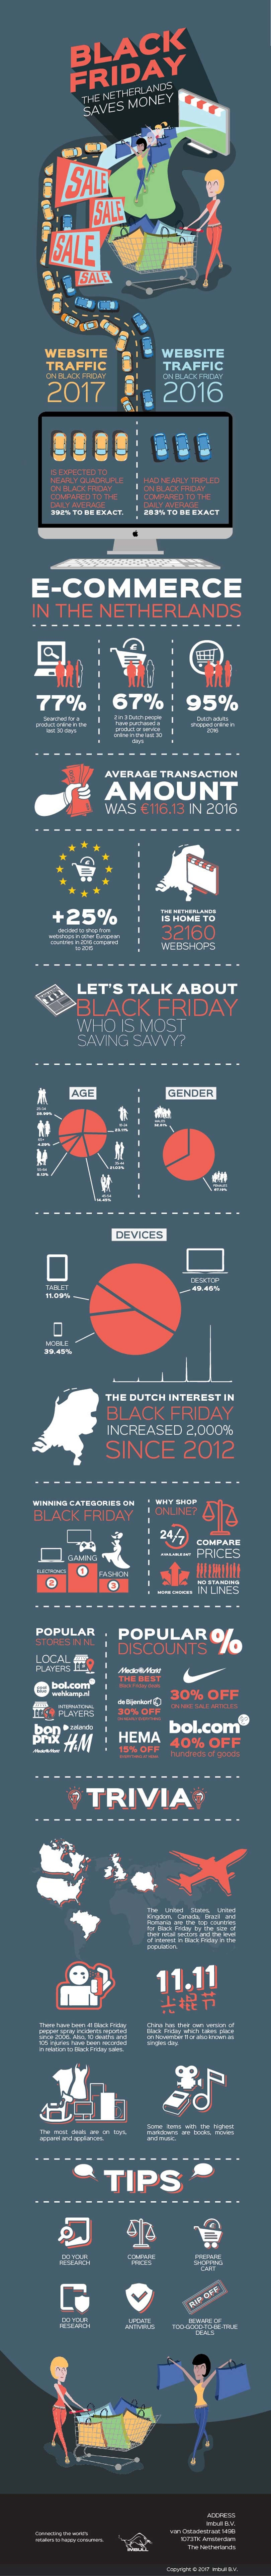 Infographic - Black Friday Nederland 2017 cijfers en data